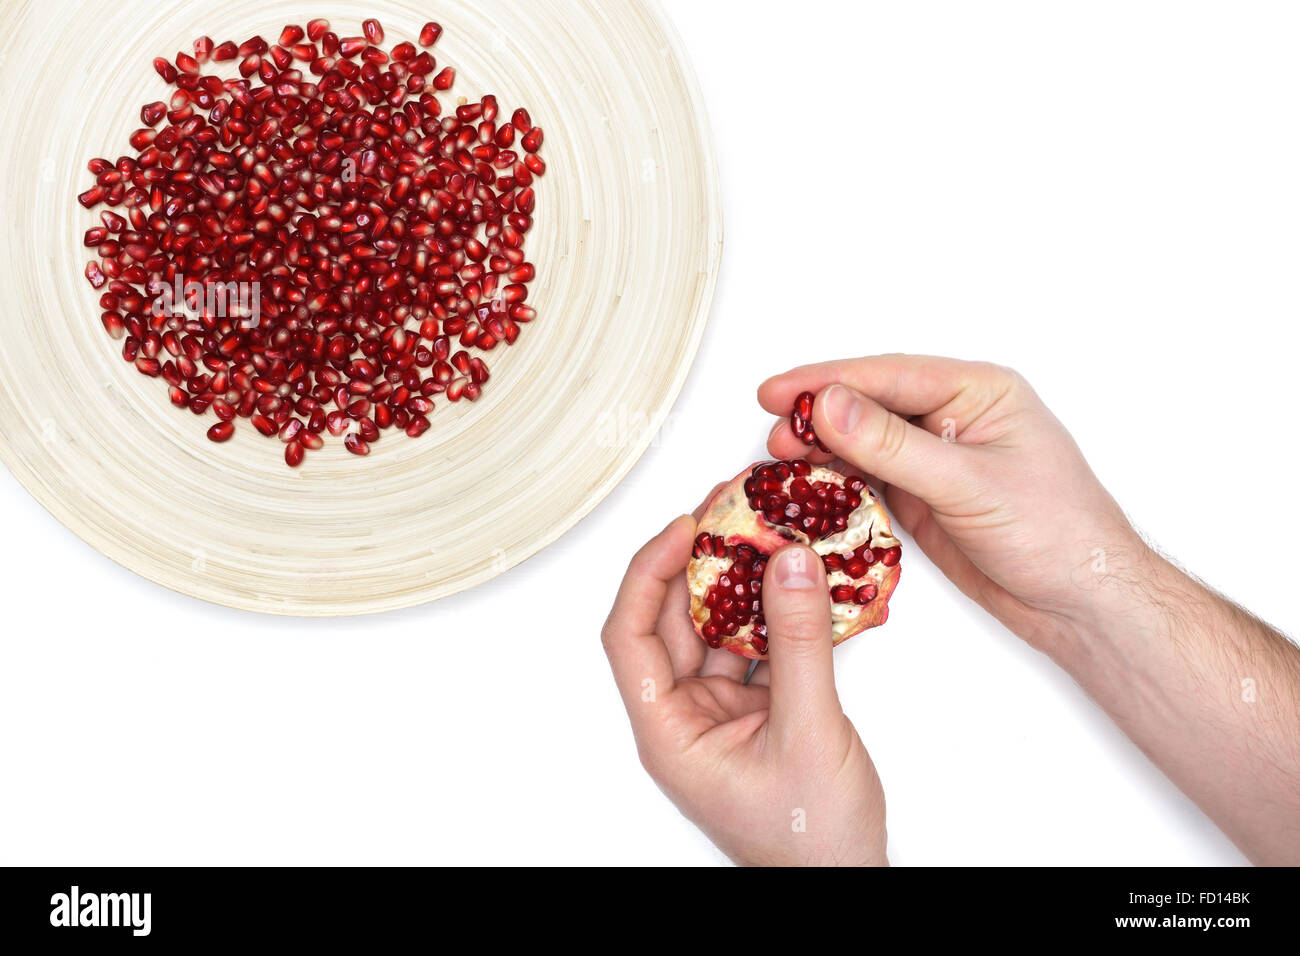 Sources Of Vitamins And Antioxidants In The Winter Food For Raw Stock Photo 94067783 Alamy